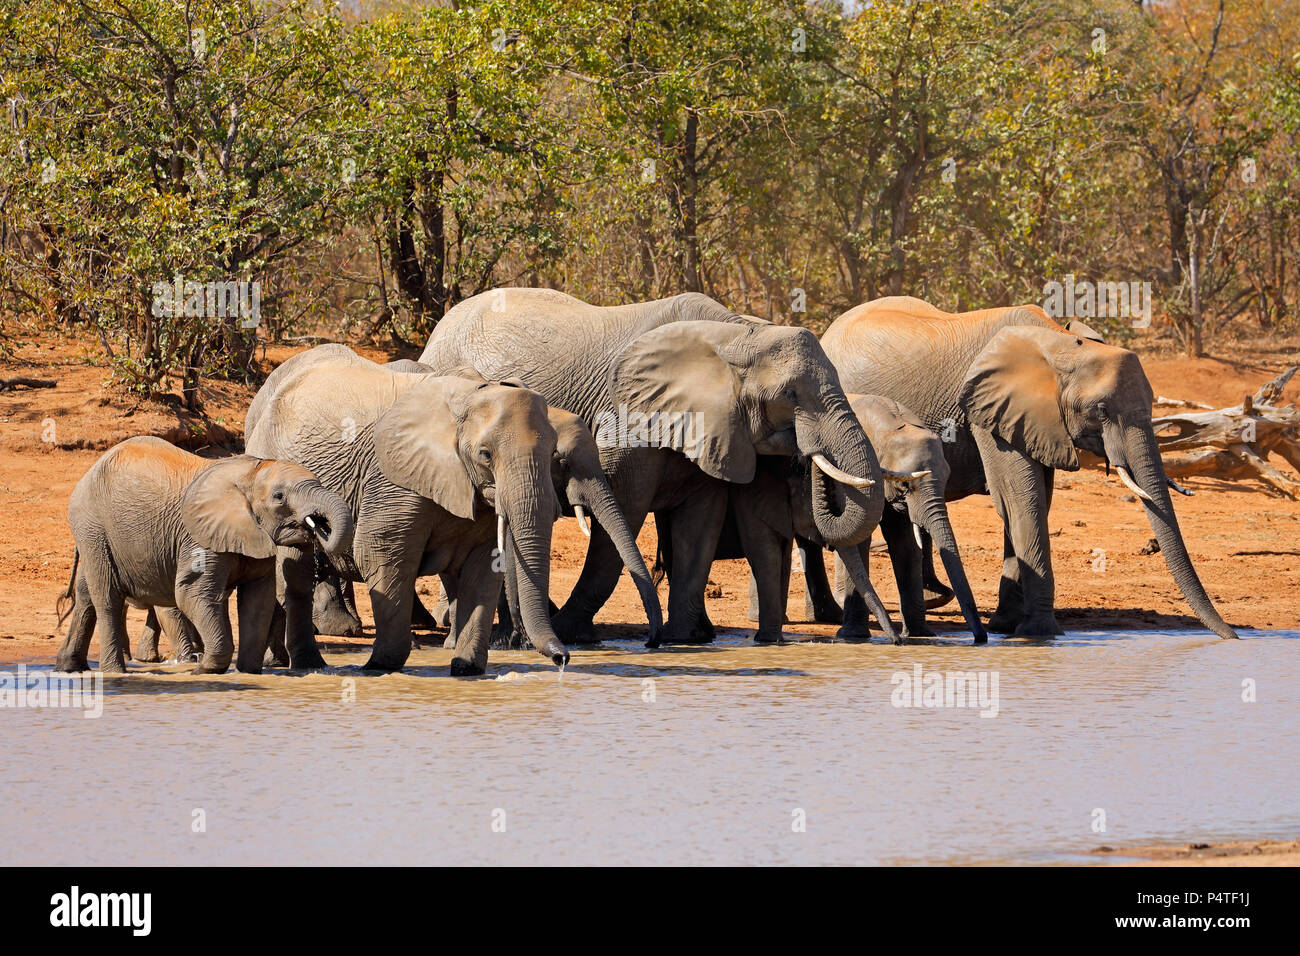 African elephants (Loxodonta africana) at a waterhole, Kruger National Park, South Africa - Stock Image